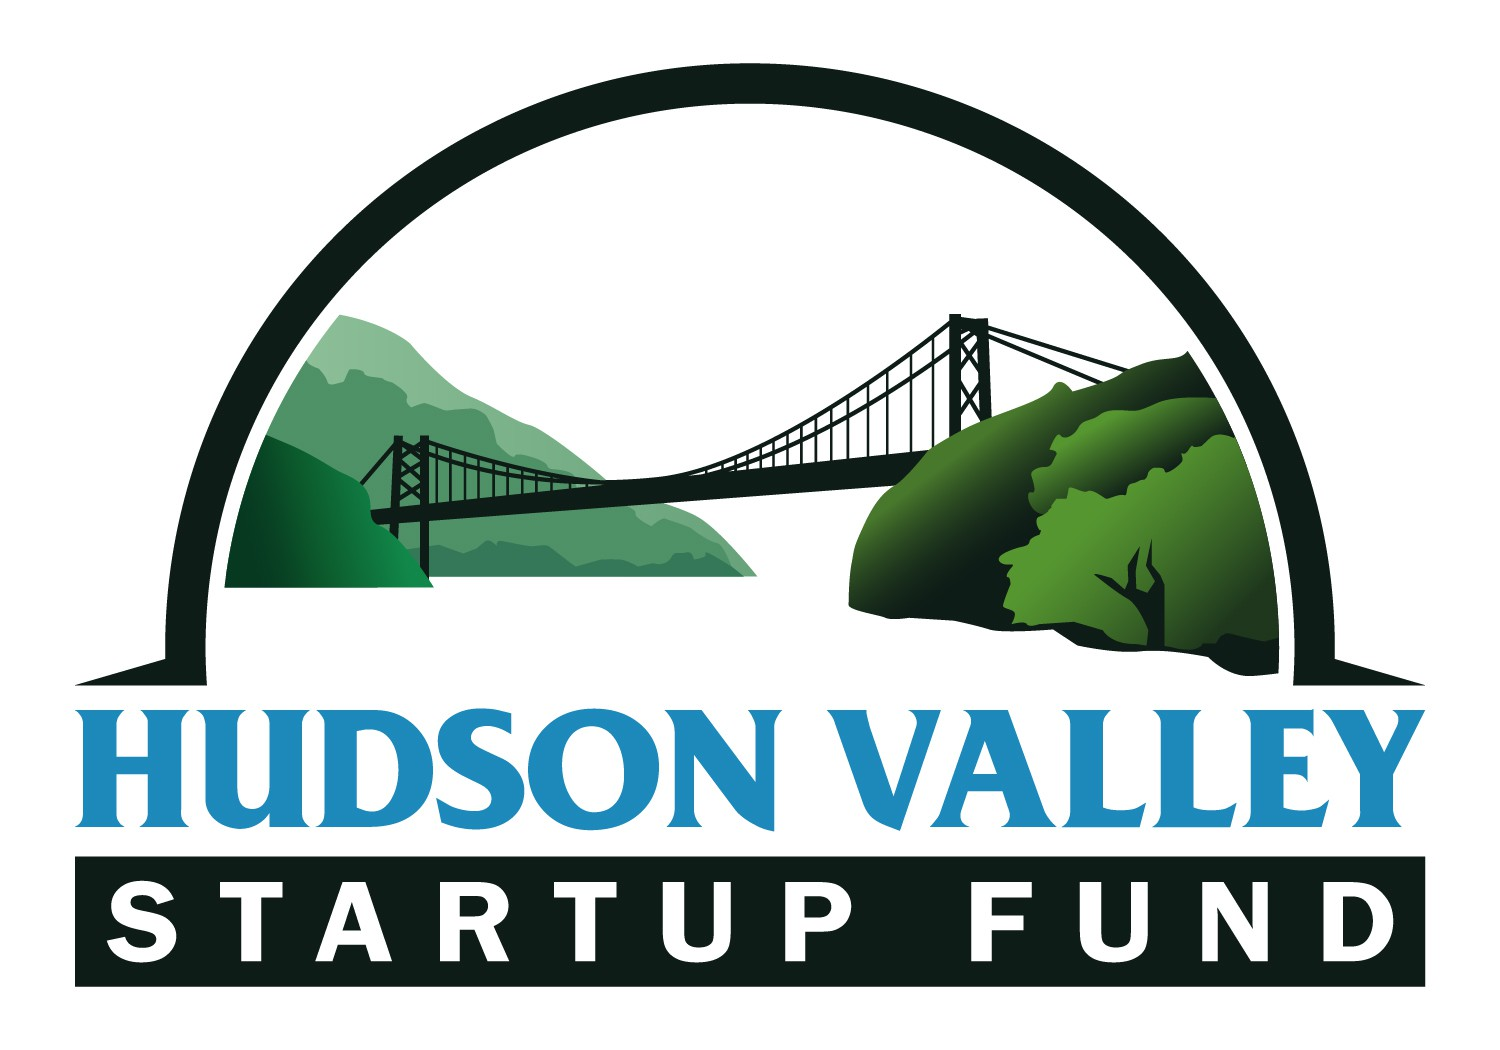 Create a logo that evokes what is great about the Hudson Valley!